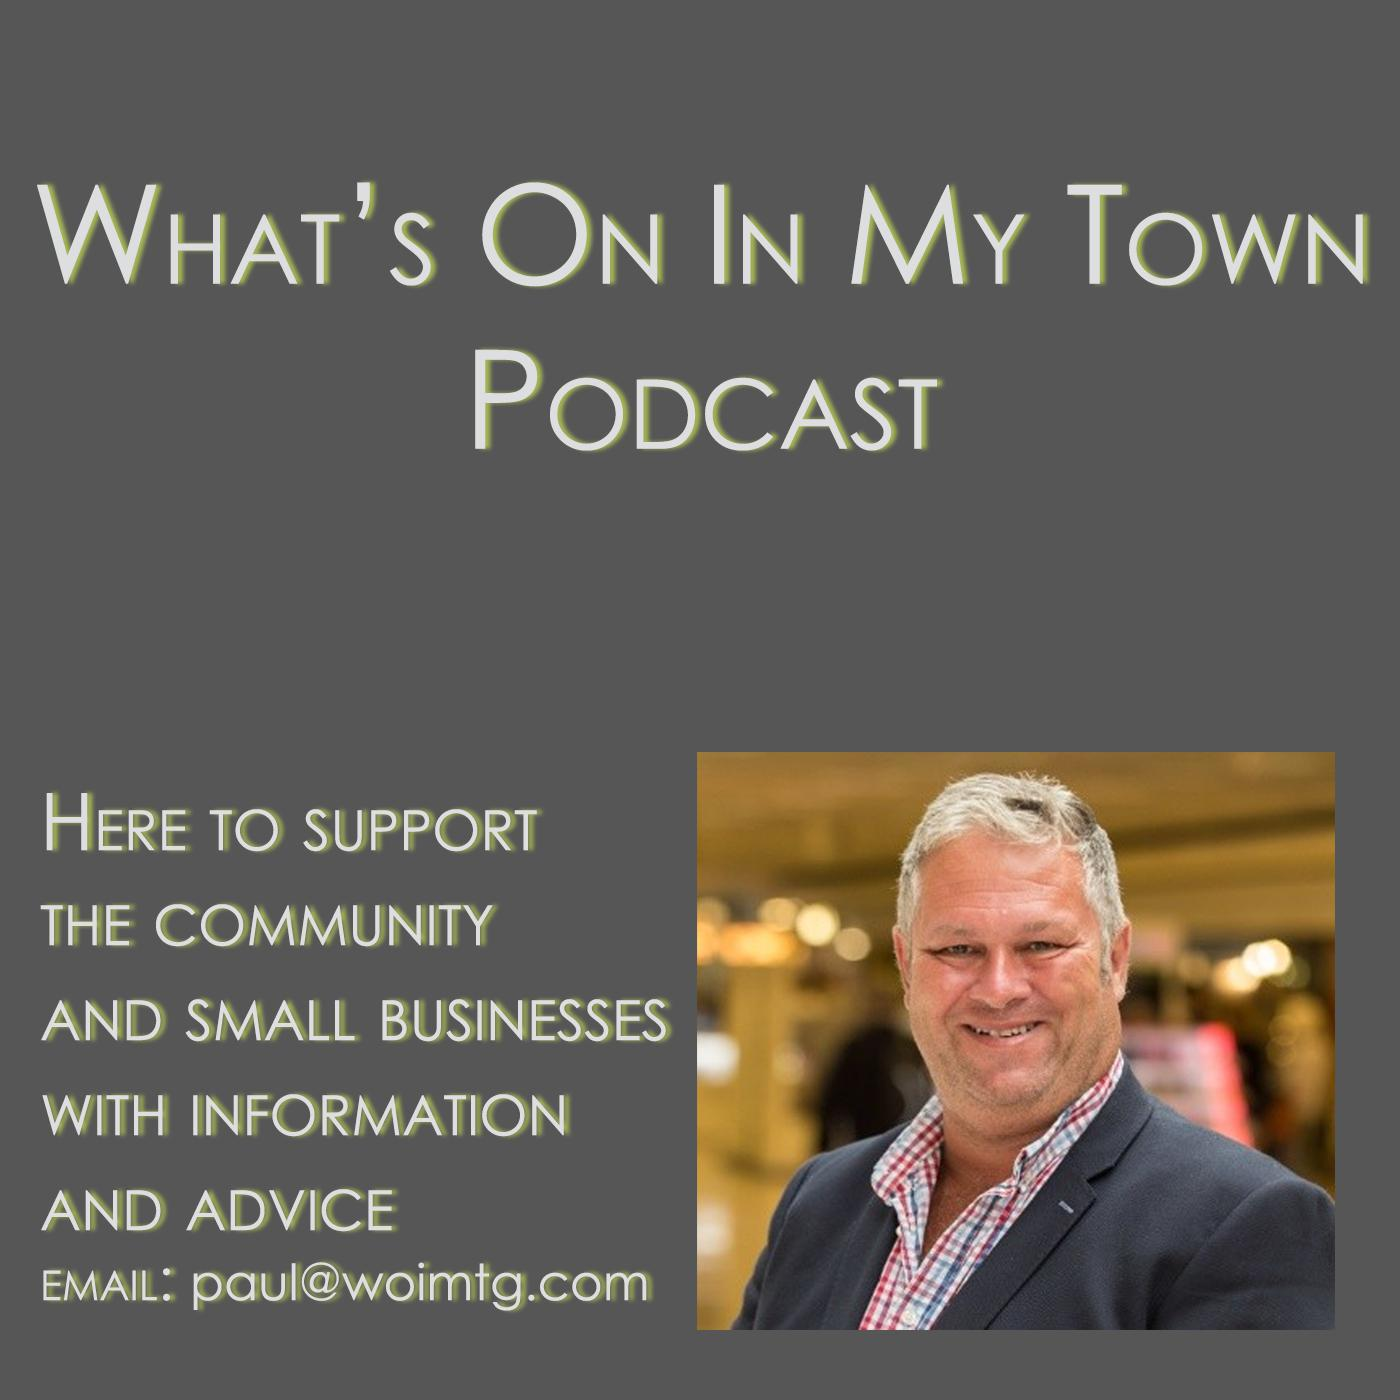 Podcast's From What's On In My Town